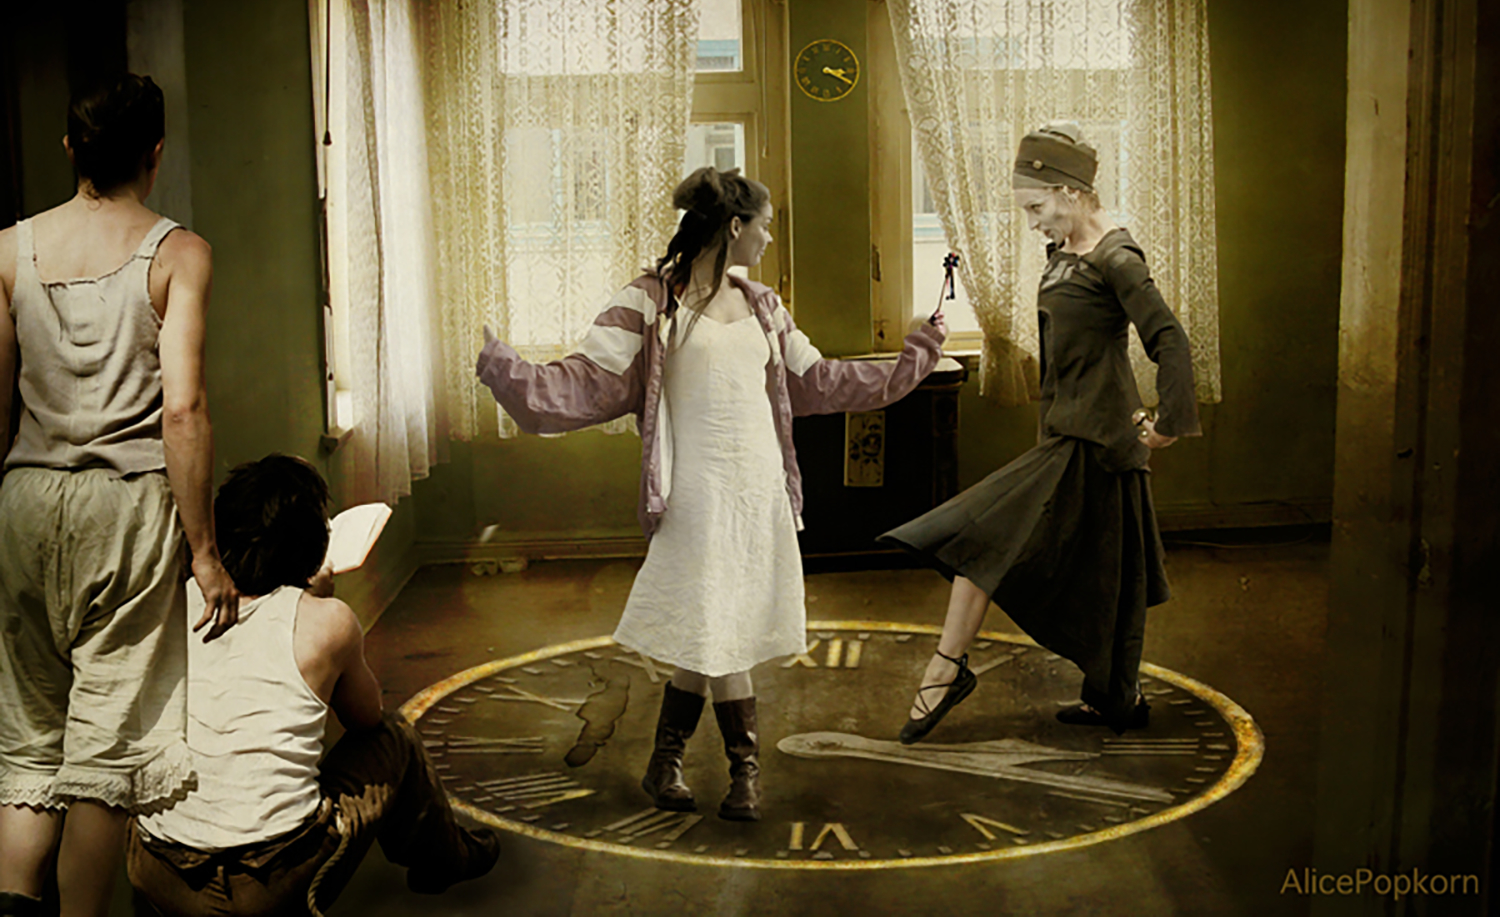 Time spells are notoriously unreliable but they do look like a lot of fun!